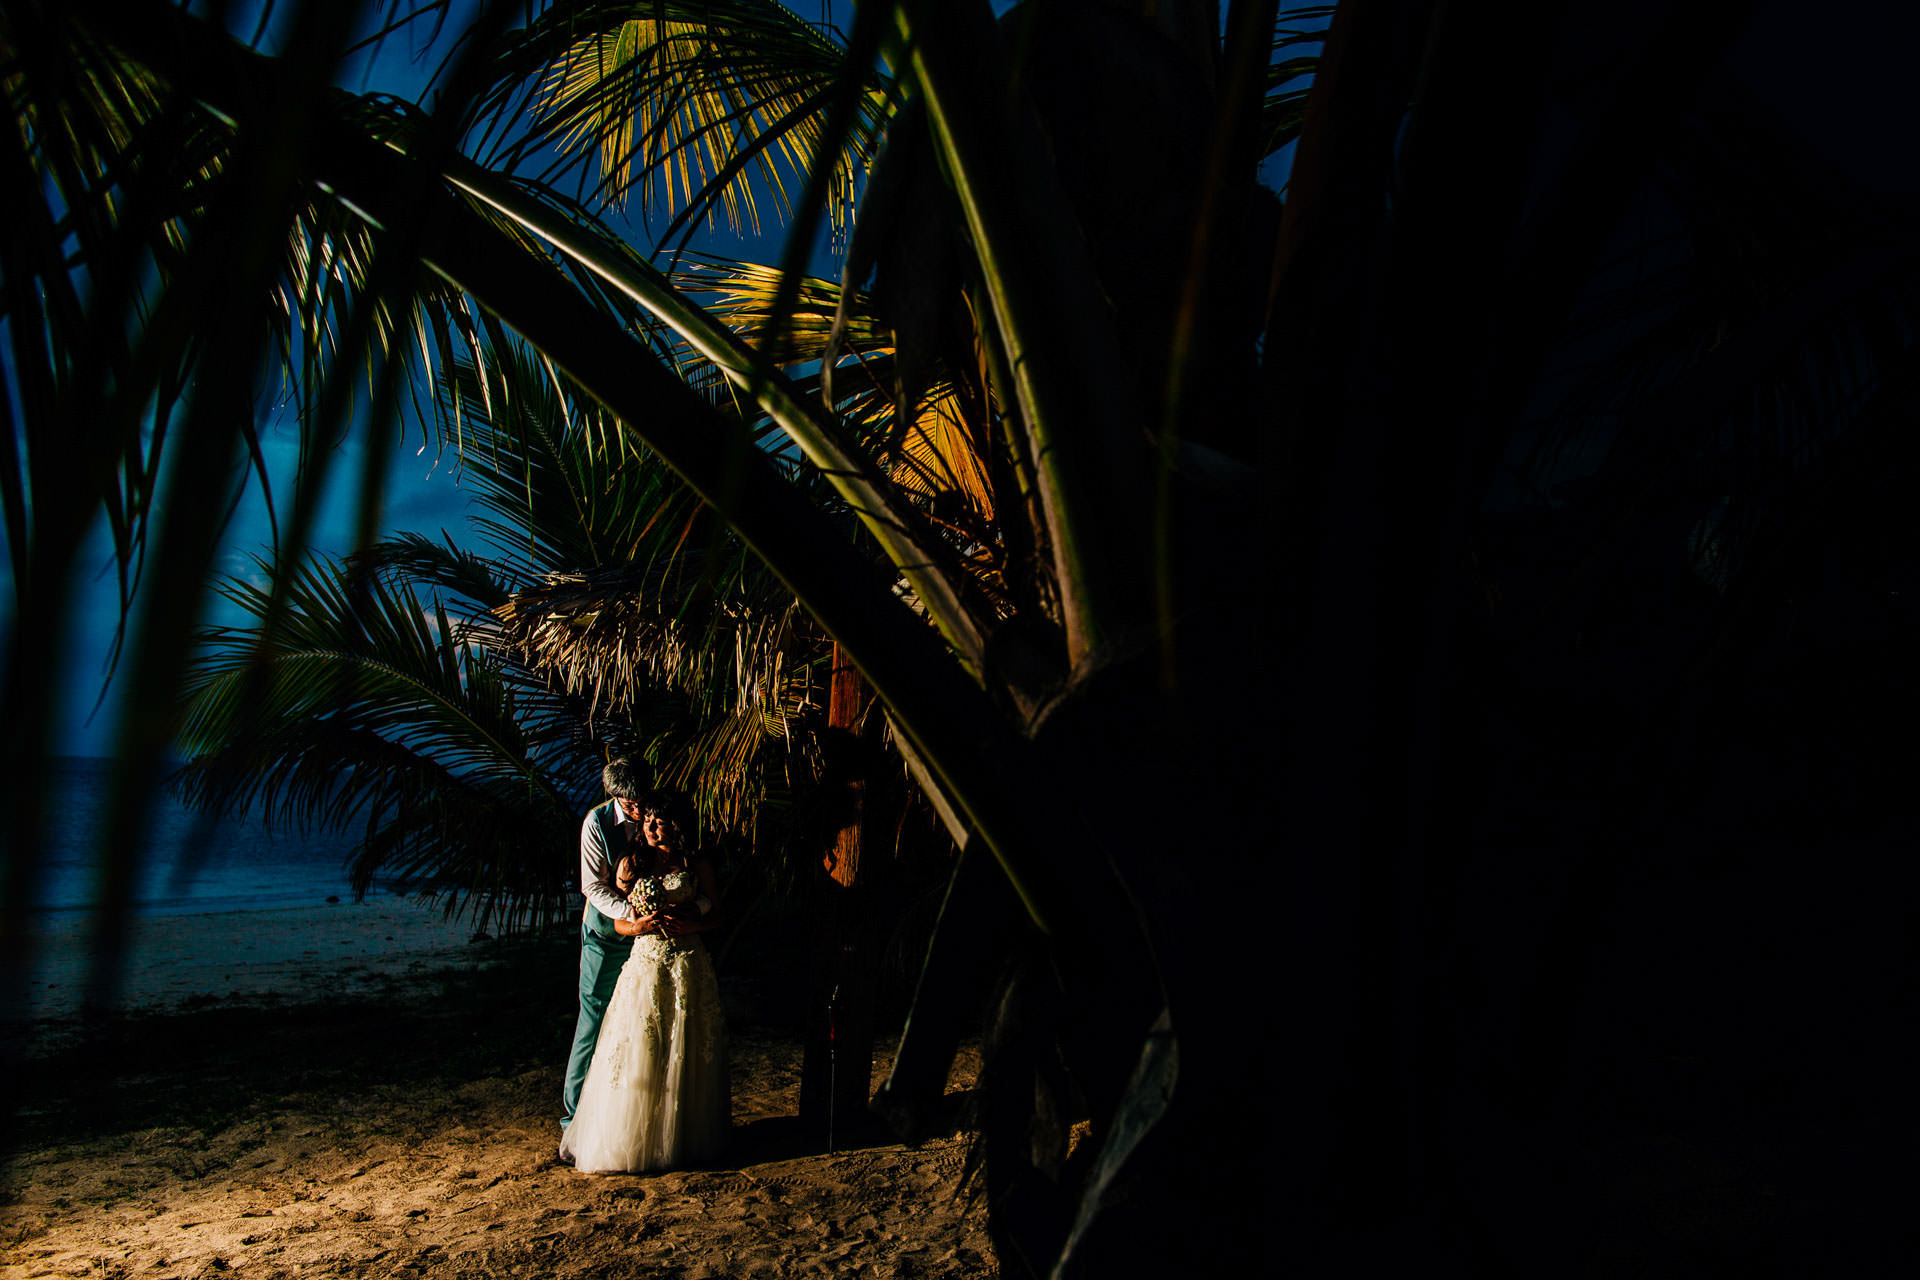 Best wedding photography 2016 - antigua destination wedding photography with palm trees